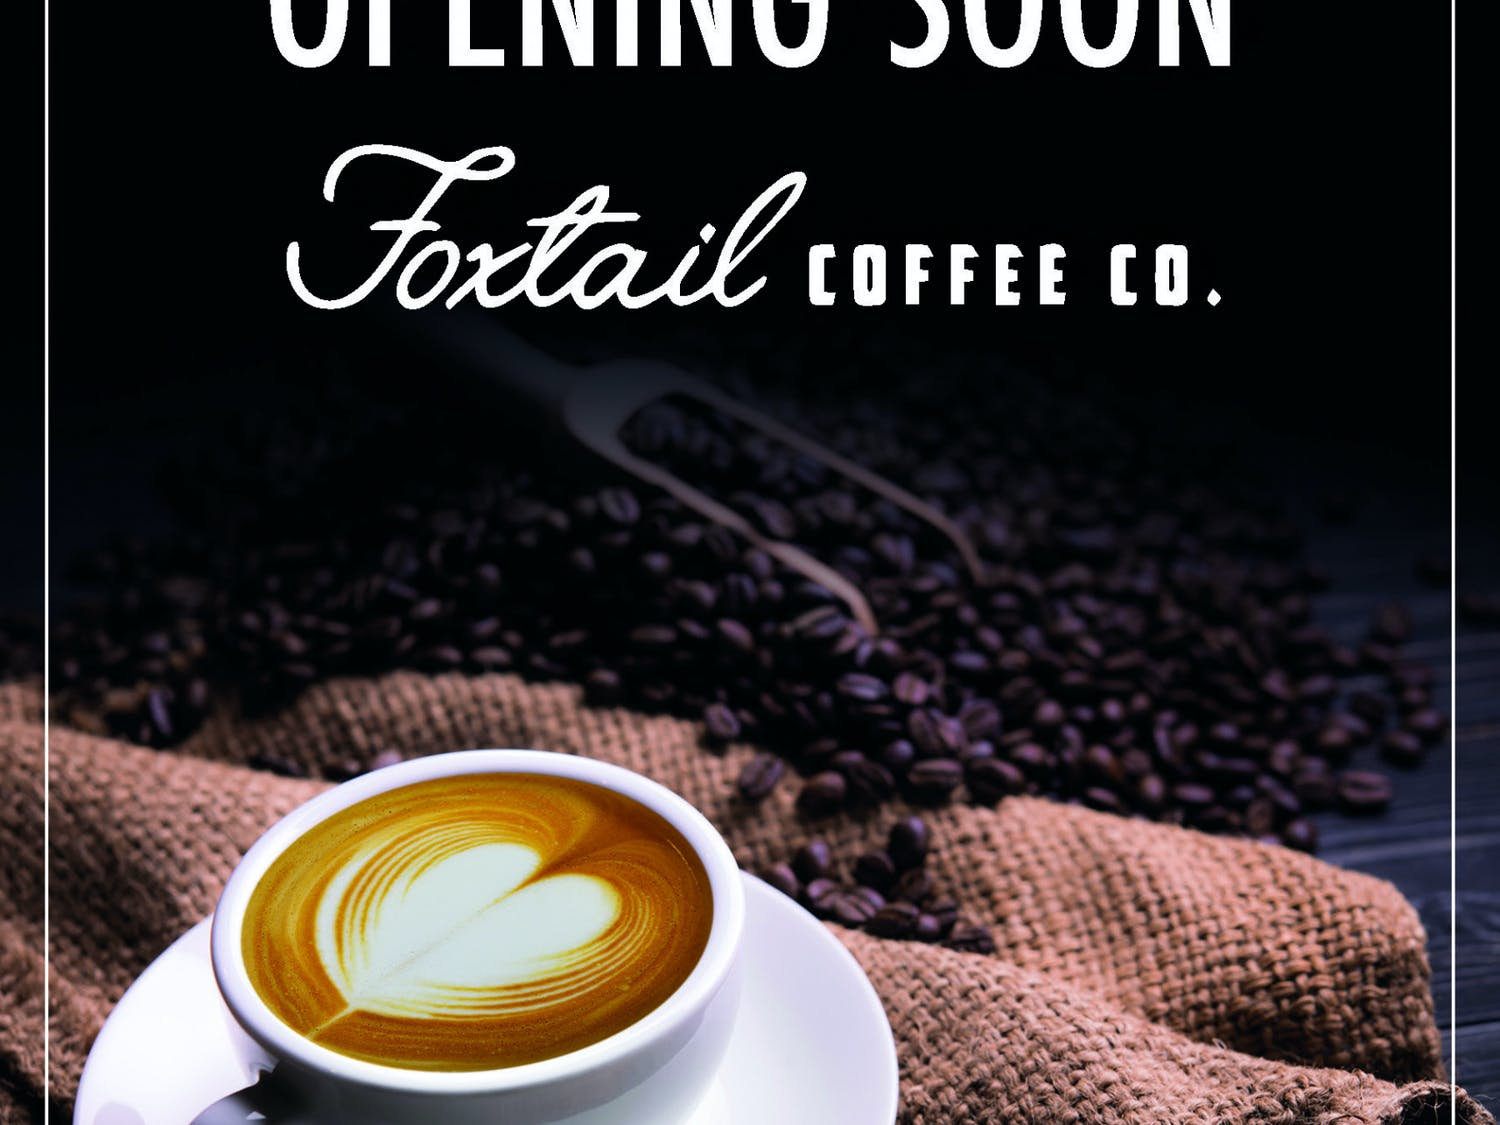 From drinks like cold brews and chai tea lattes, or bakery treats such as chocolate croissants and warm banana bread, Foxtail will offer Gainesville residents a wide variety of flavors. (Courtesy to The Alligator)